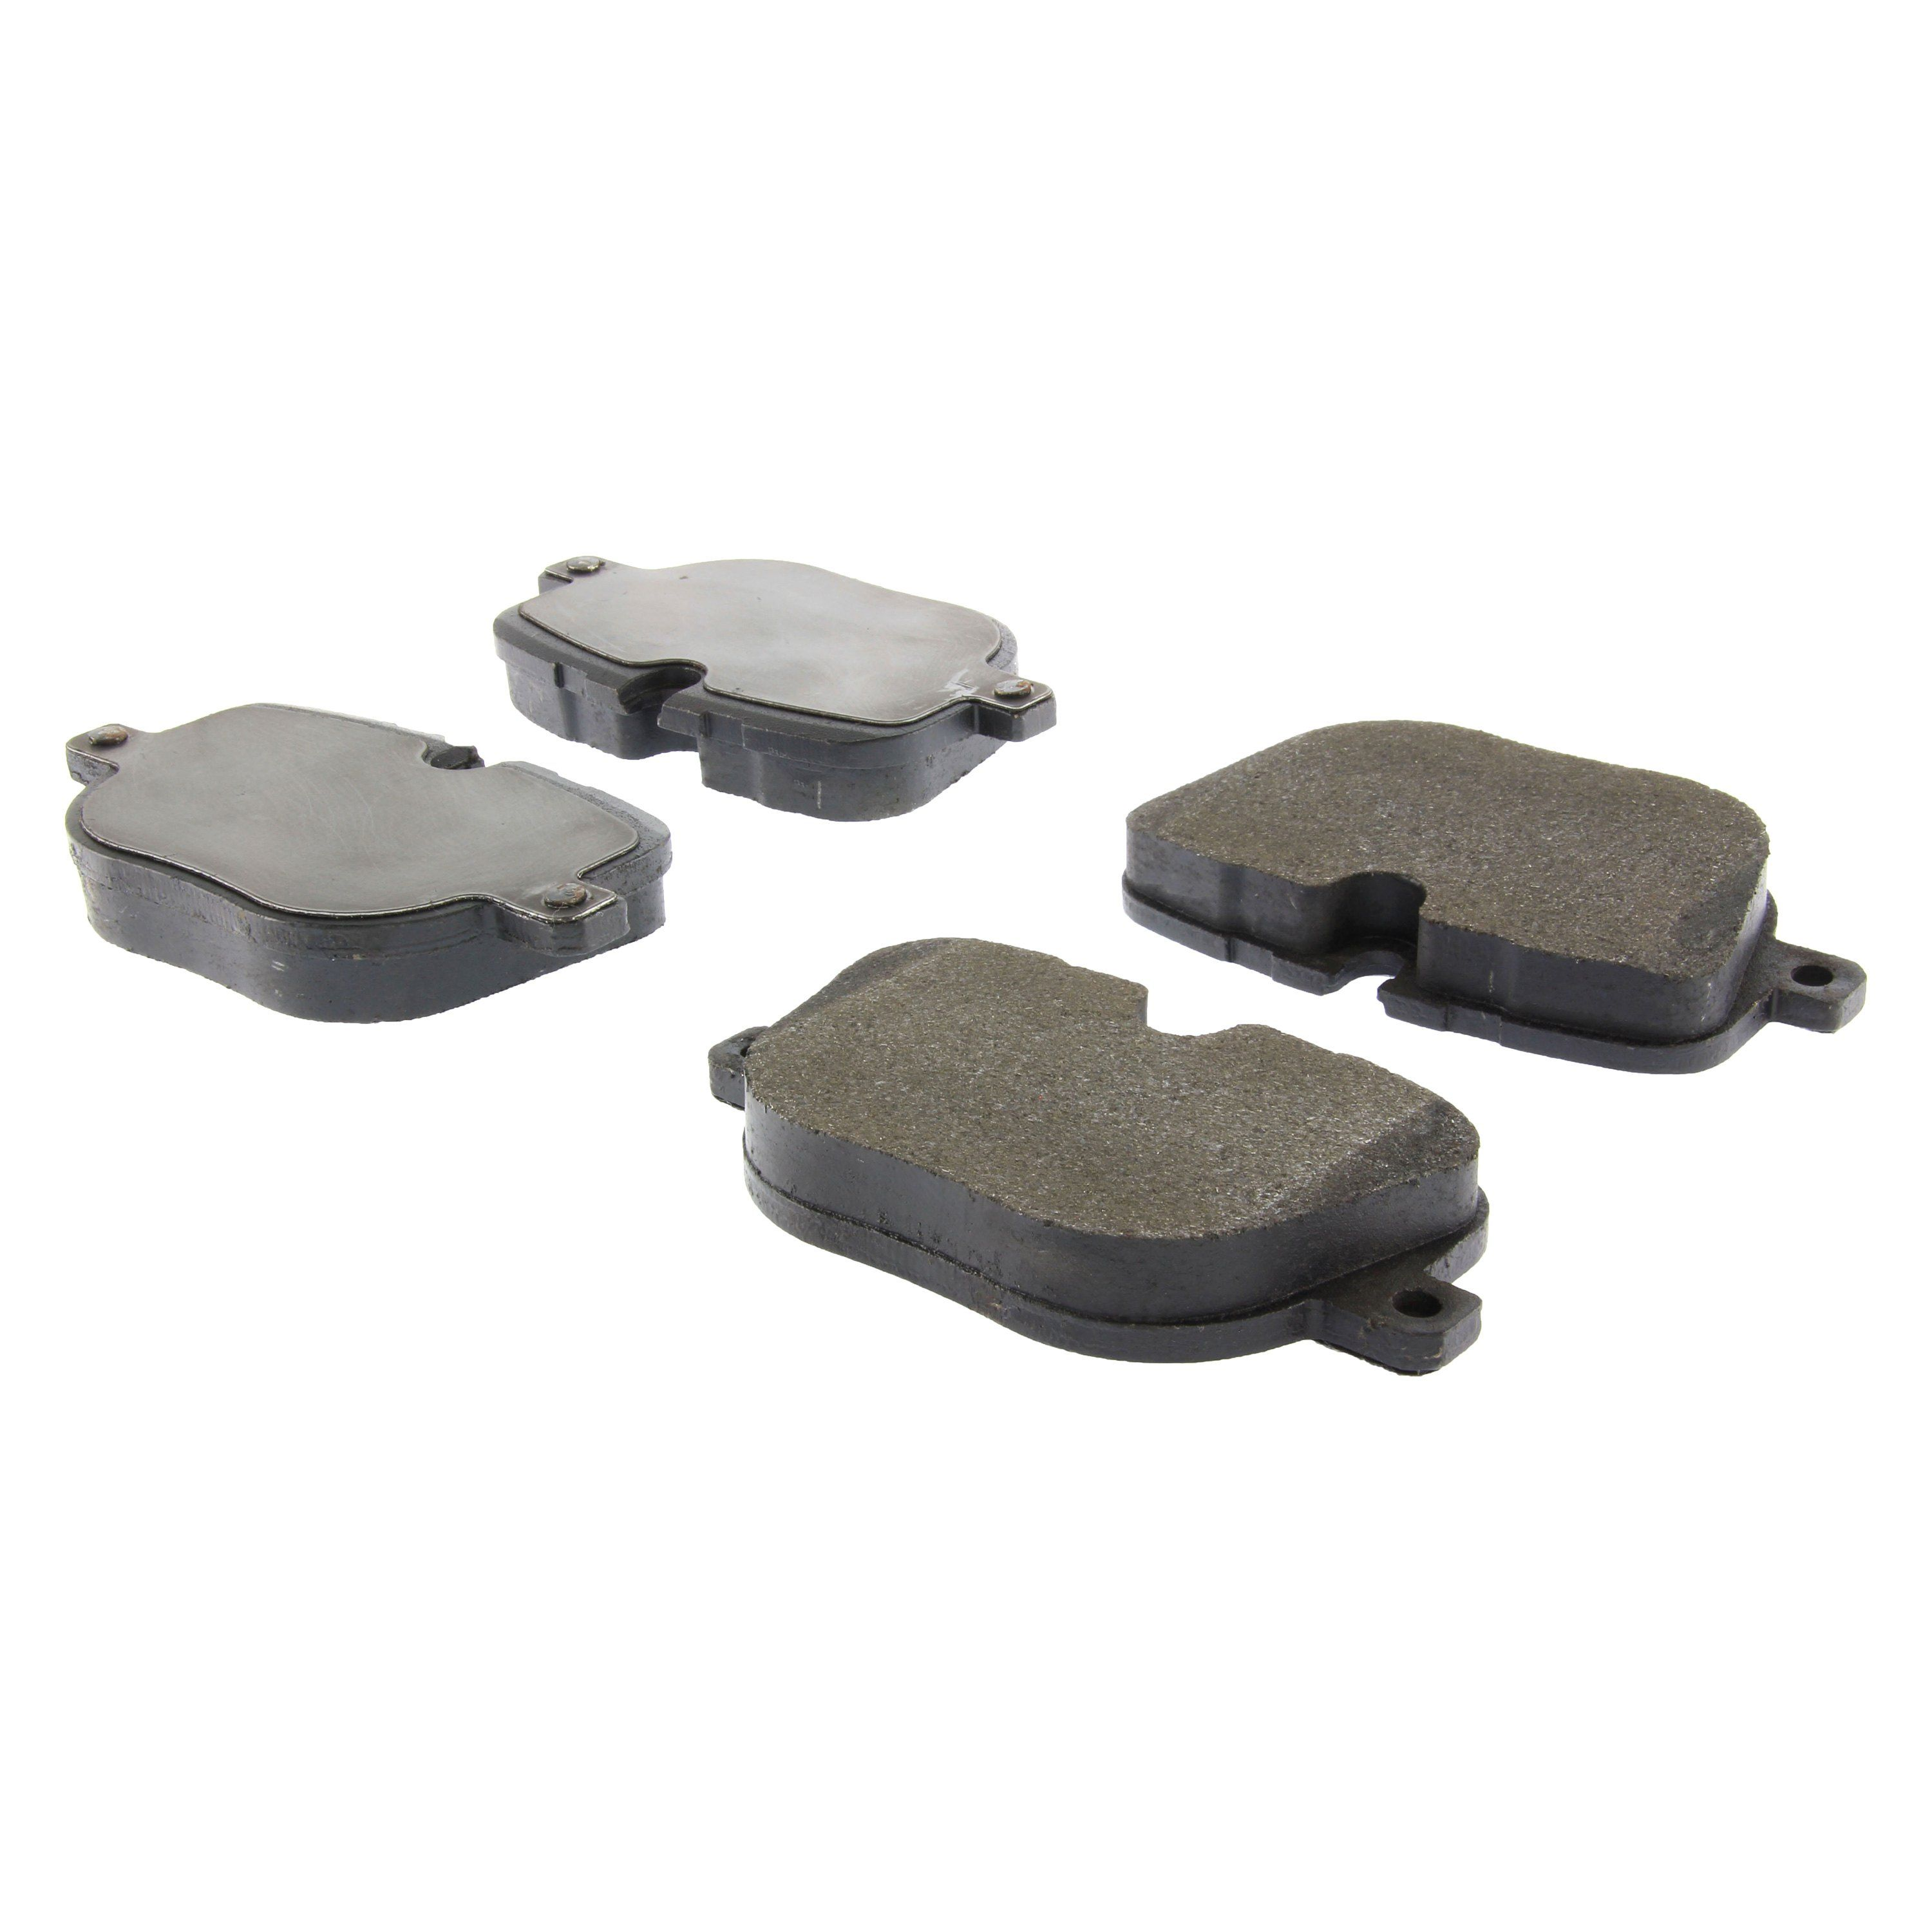 Stoptech Street Select Brake Pads Land Rover Range Rover 10 13 Rear W Hardware 305 14270 Range Rover Range Rover Supercharged Brake Pads